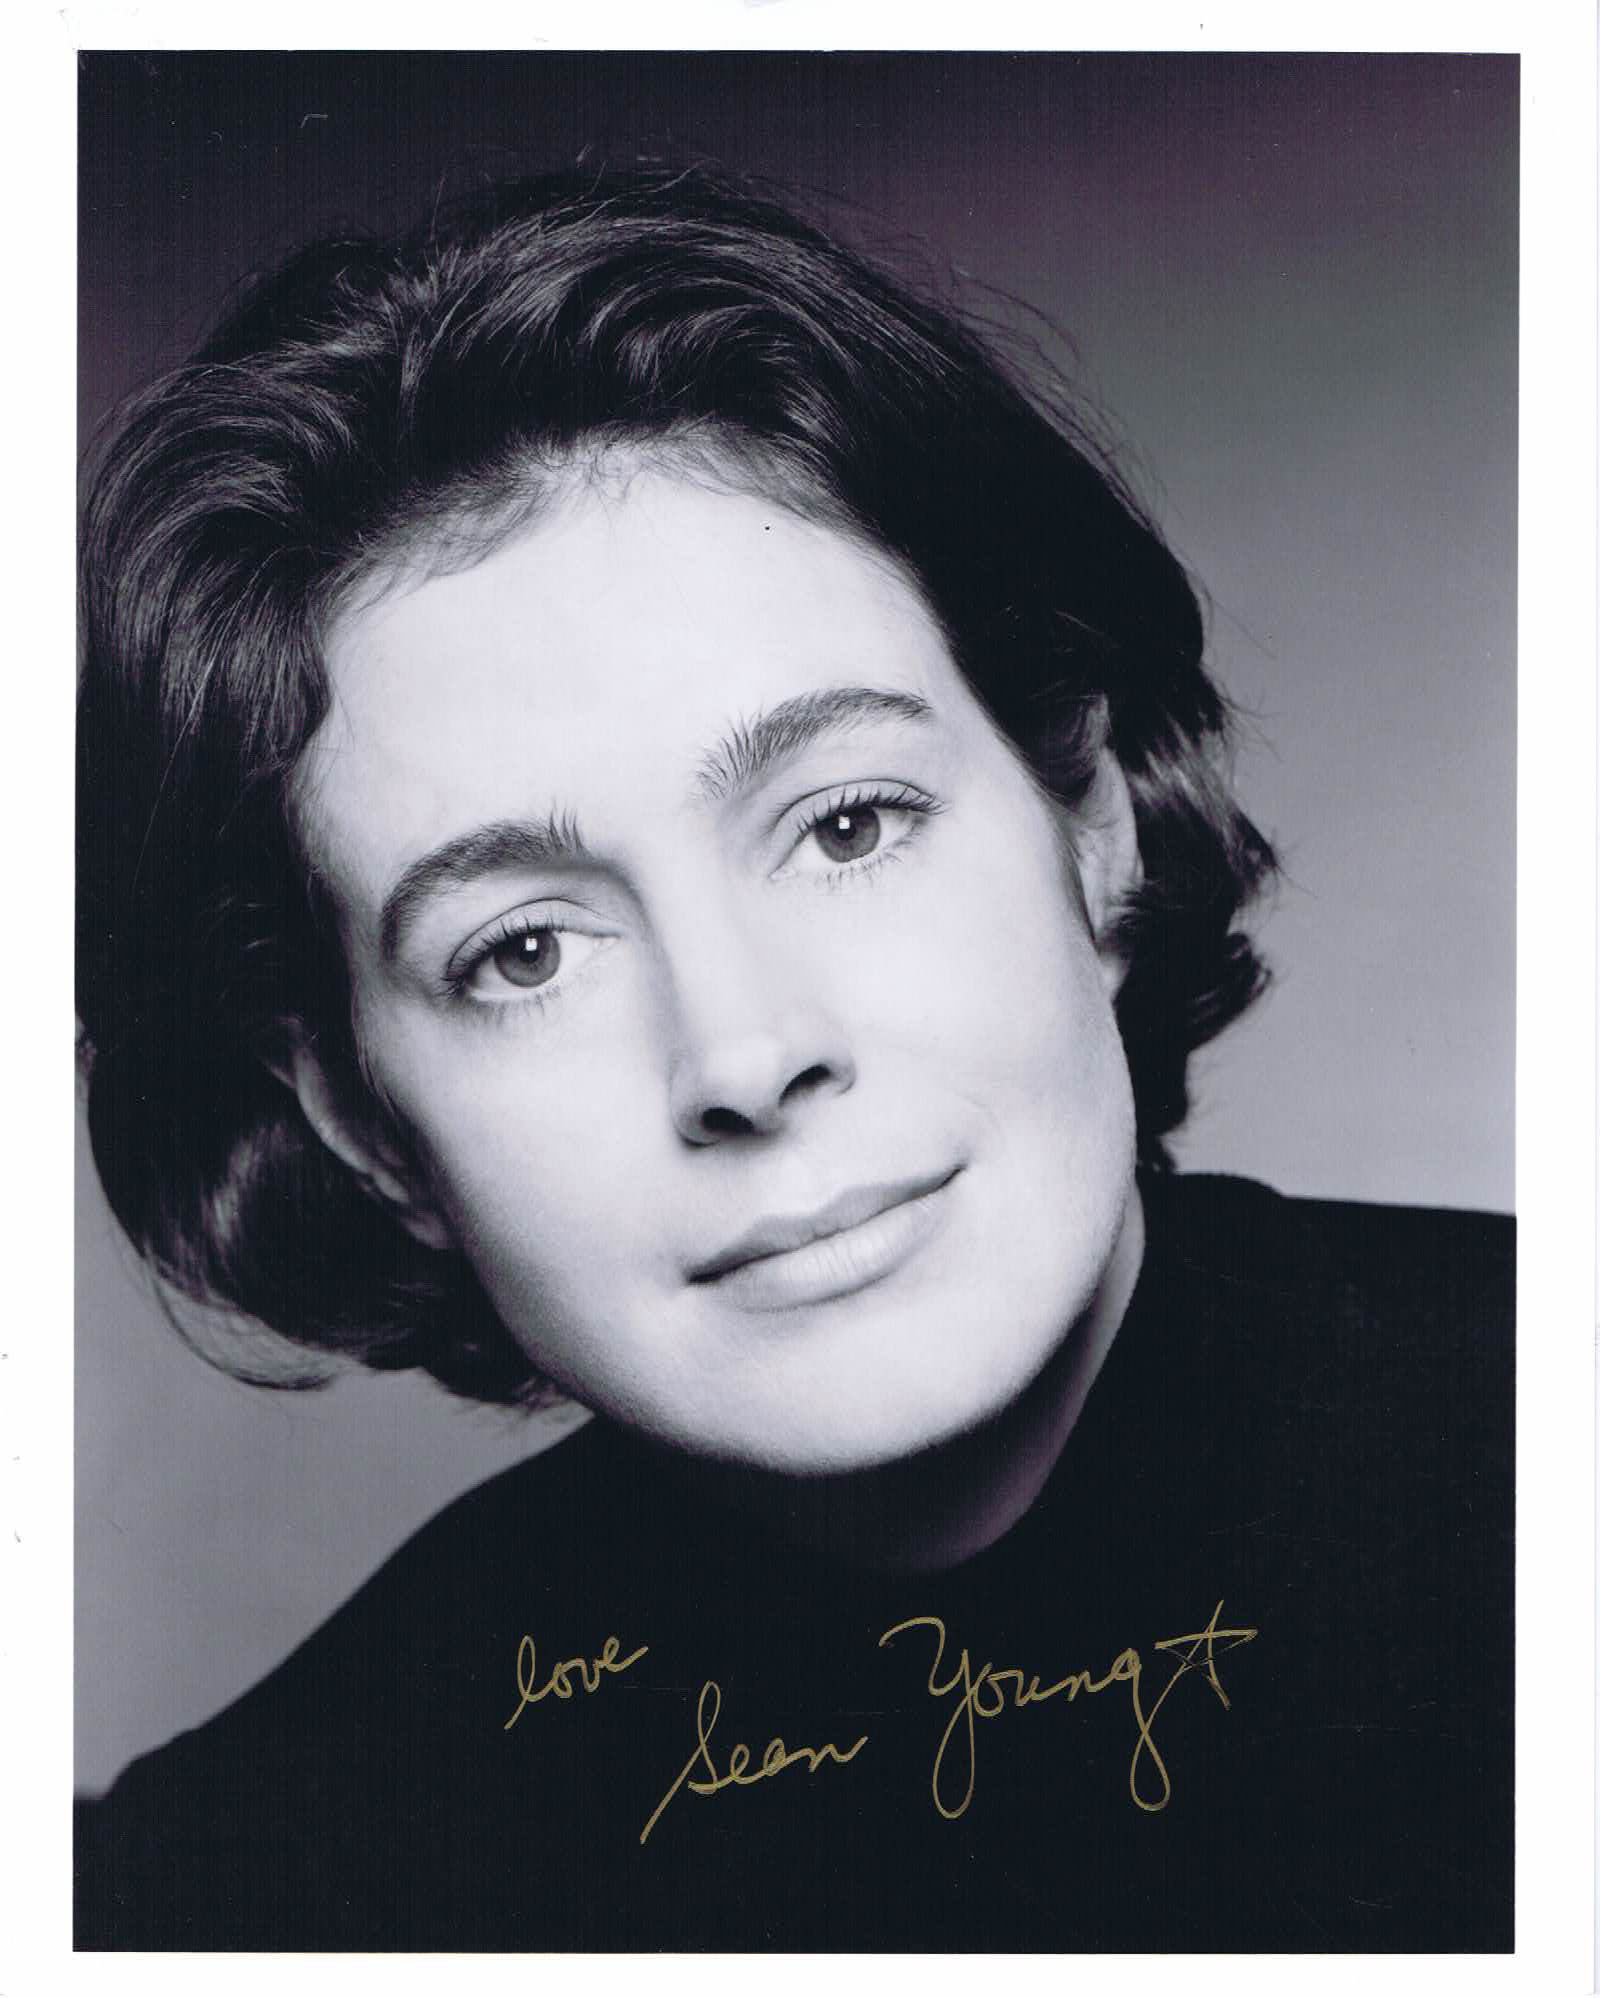 SEAN YOUNG Autograph 8 x 10 Photo